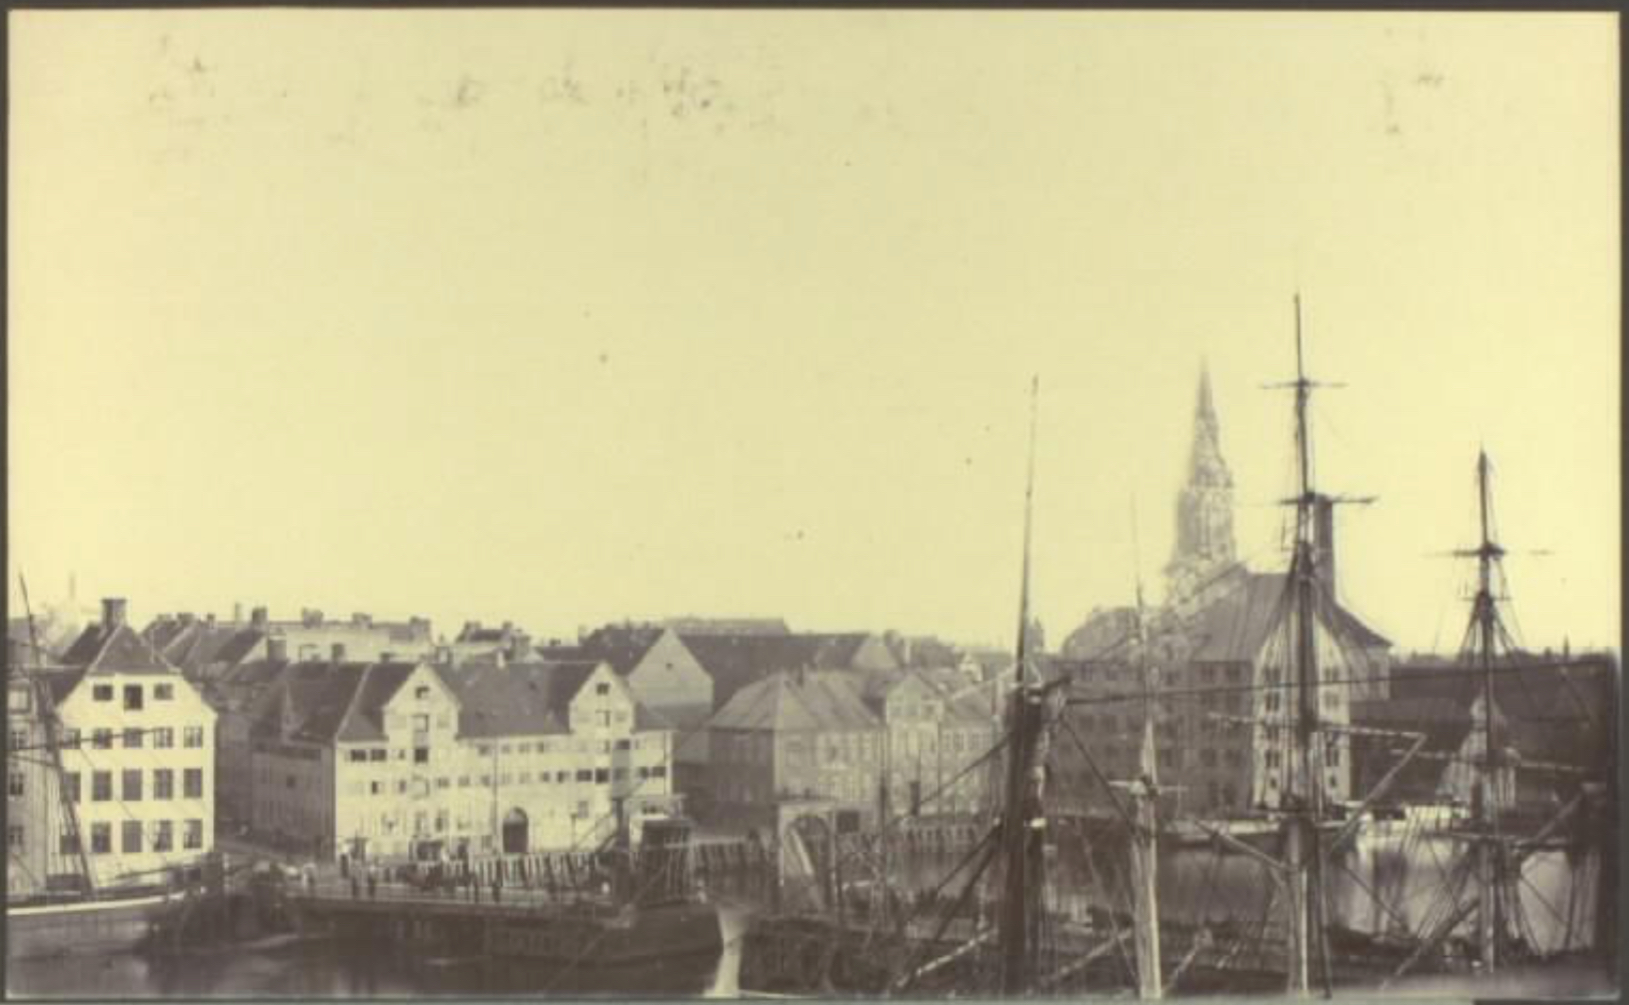 Old Knippelsbro copy.jpg